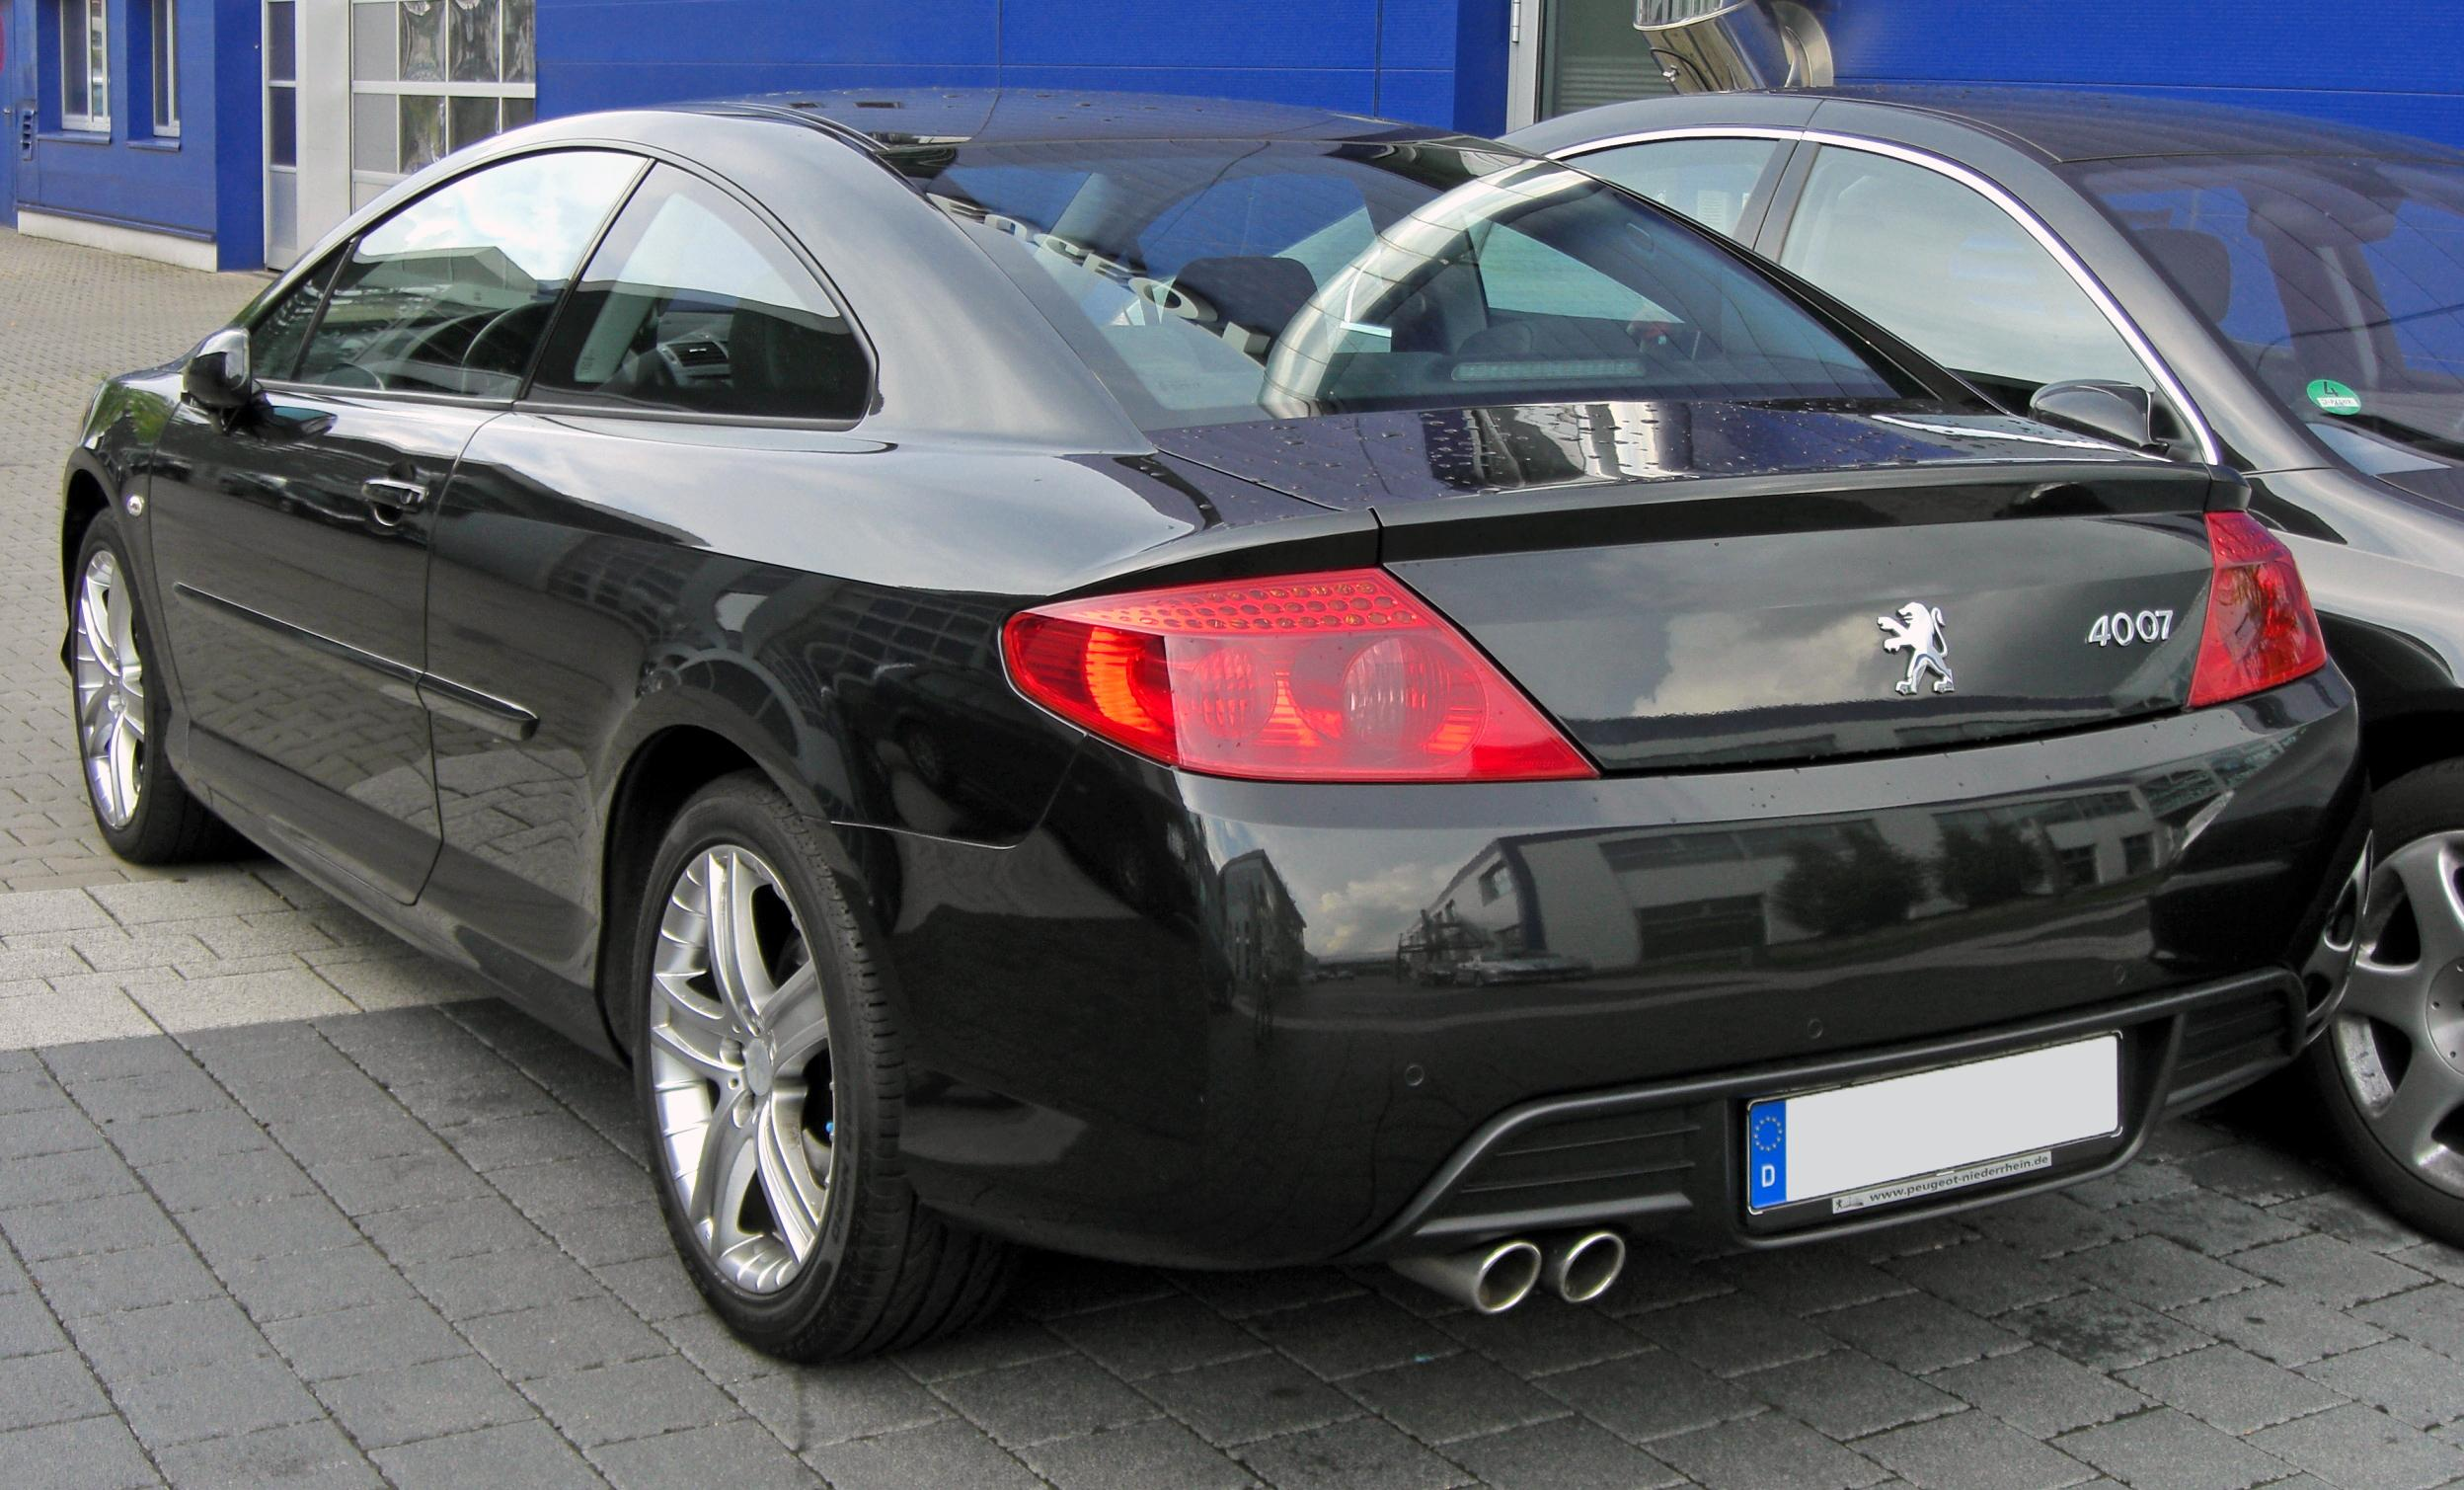 2009 peugeot 407 coupe pictures information and specs auto. Black Bedroom Furniture Sets. Home Design Ideas